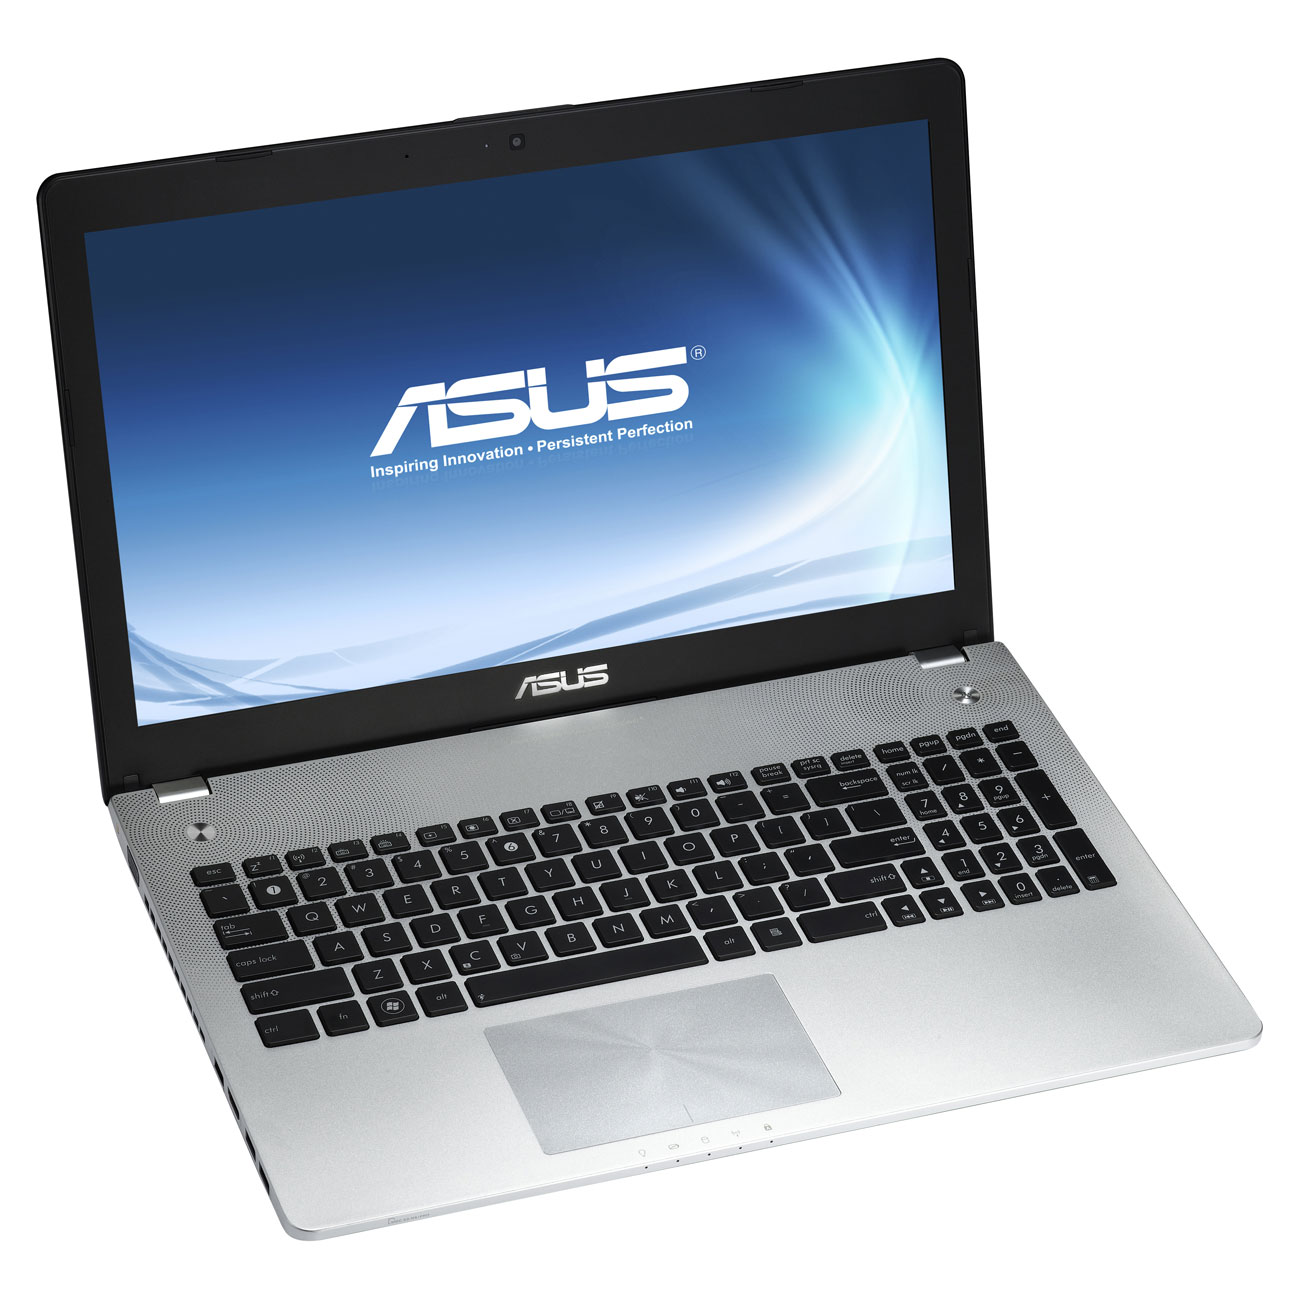 "PC portable ASUS N56VB-S4191H Intel Core i7-3630M 4 Go 750 Go 15.6"" LED NVIDIA GeForce GT 740M Graveur DVD Wi-Fi N/Bluetooth Webcam Windows 8 64 bits (garantie constructeur 1 an)"